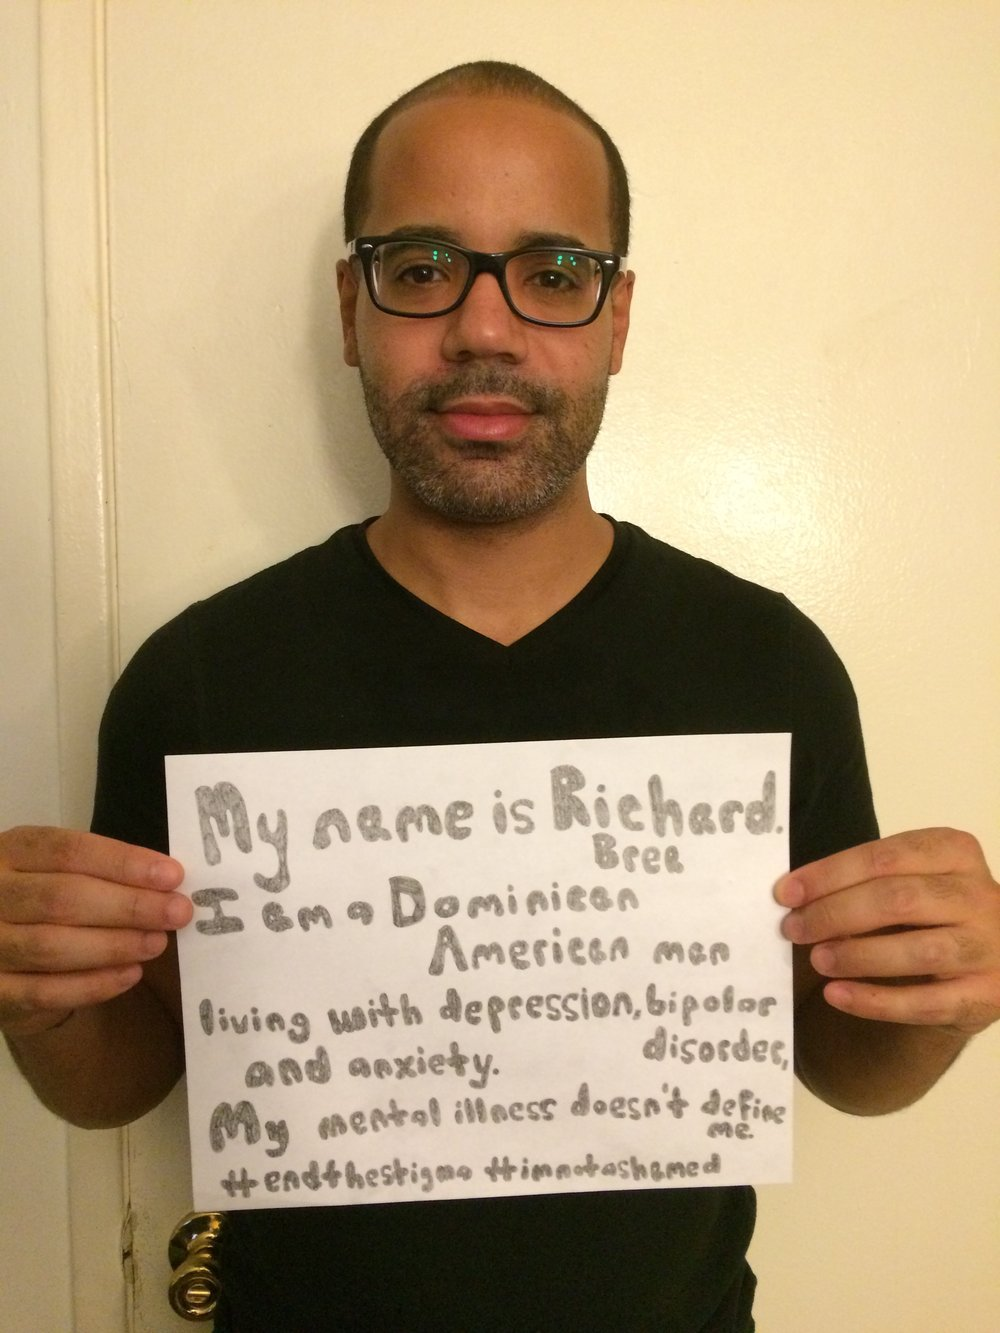 "Sign: ""My name is Richard Brea. I am a Dominican American man living with depression, bipolar disorder, and anxiety. My mental illness doesn't define me. #endthestigma #imnotashamed""  Image description: A Dominican-American man wearing glasses and a black t-shirt."